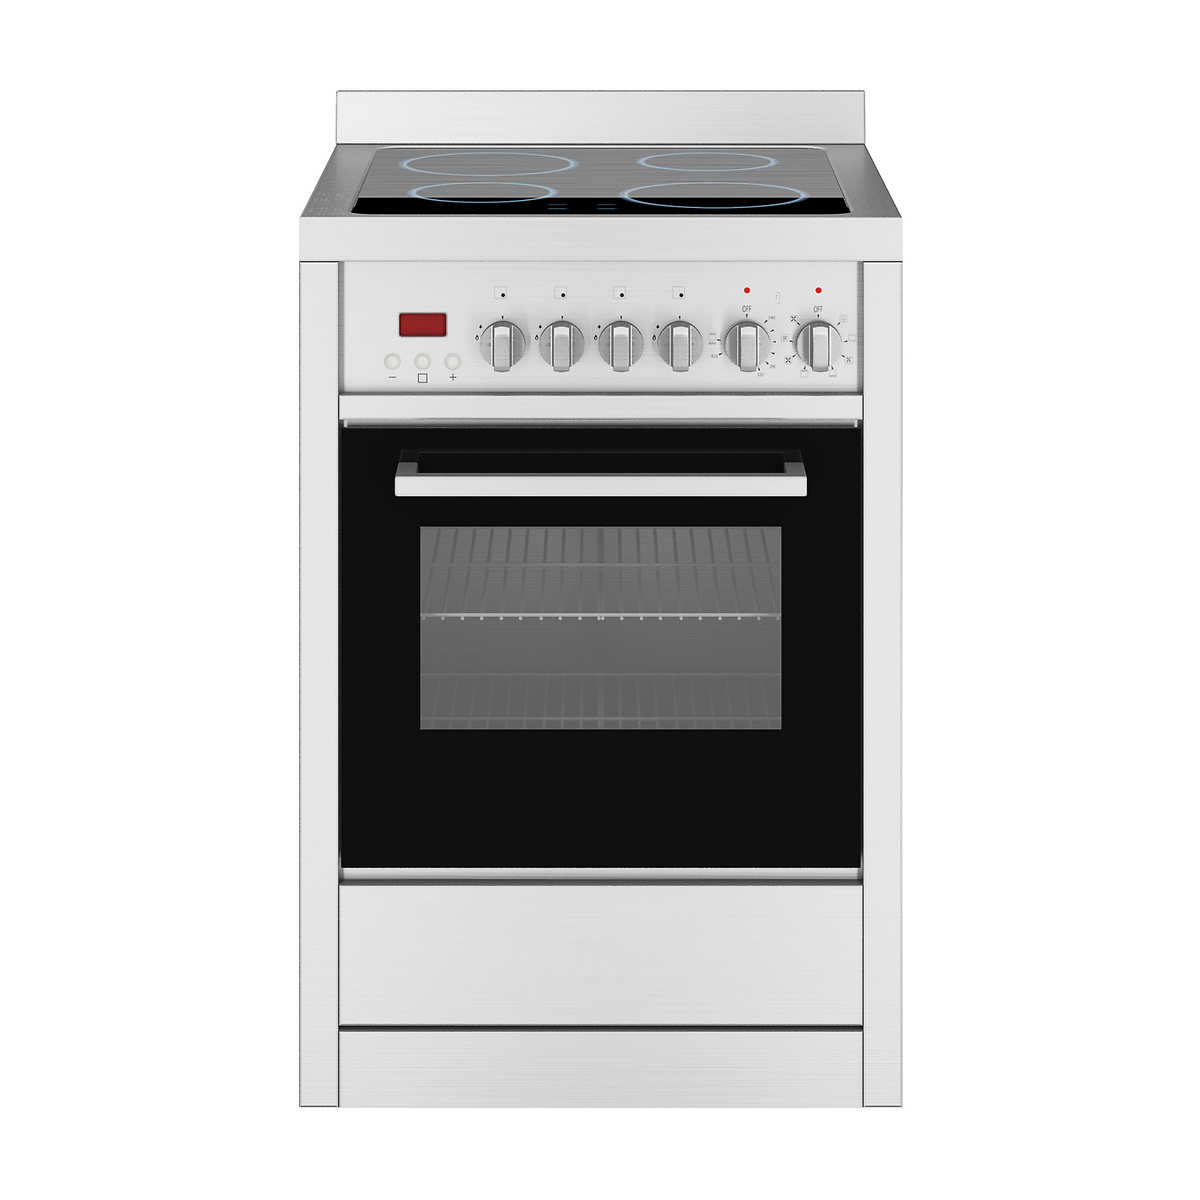 Whirlpool white ice drop in range - Ancona Gourmet Series 24 2 5cuft Freestanding Stainless Steel Electric Range With Vitroceramic Cooktop